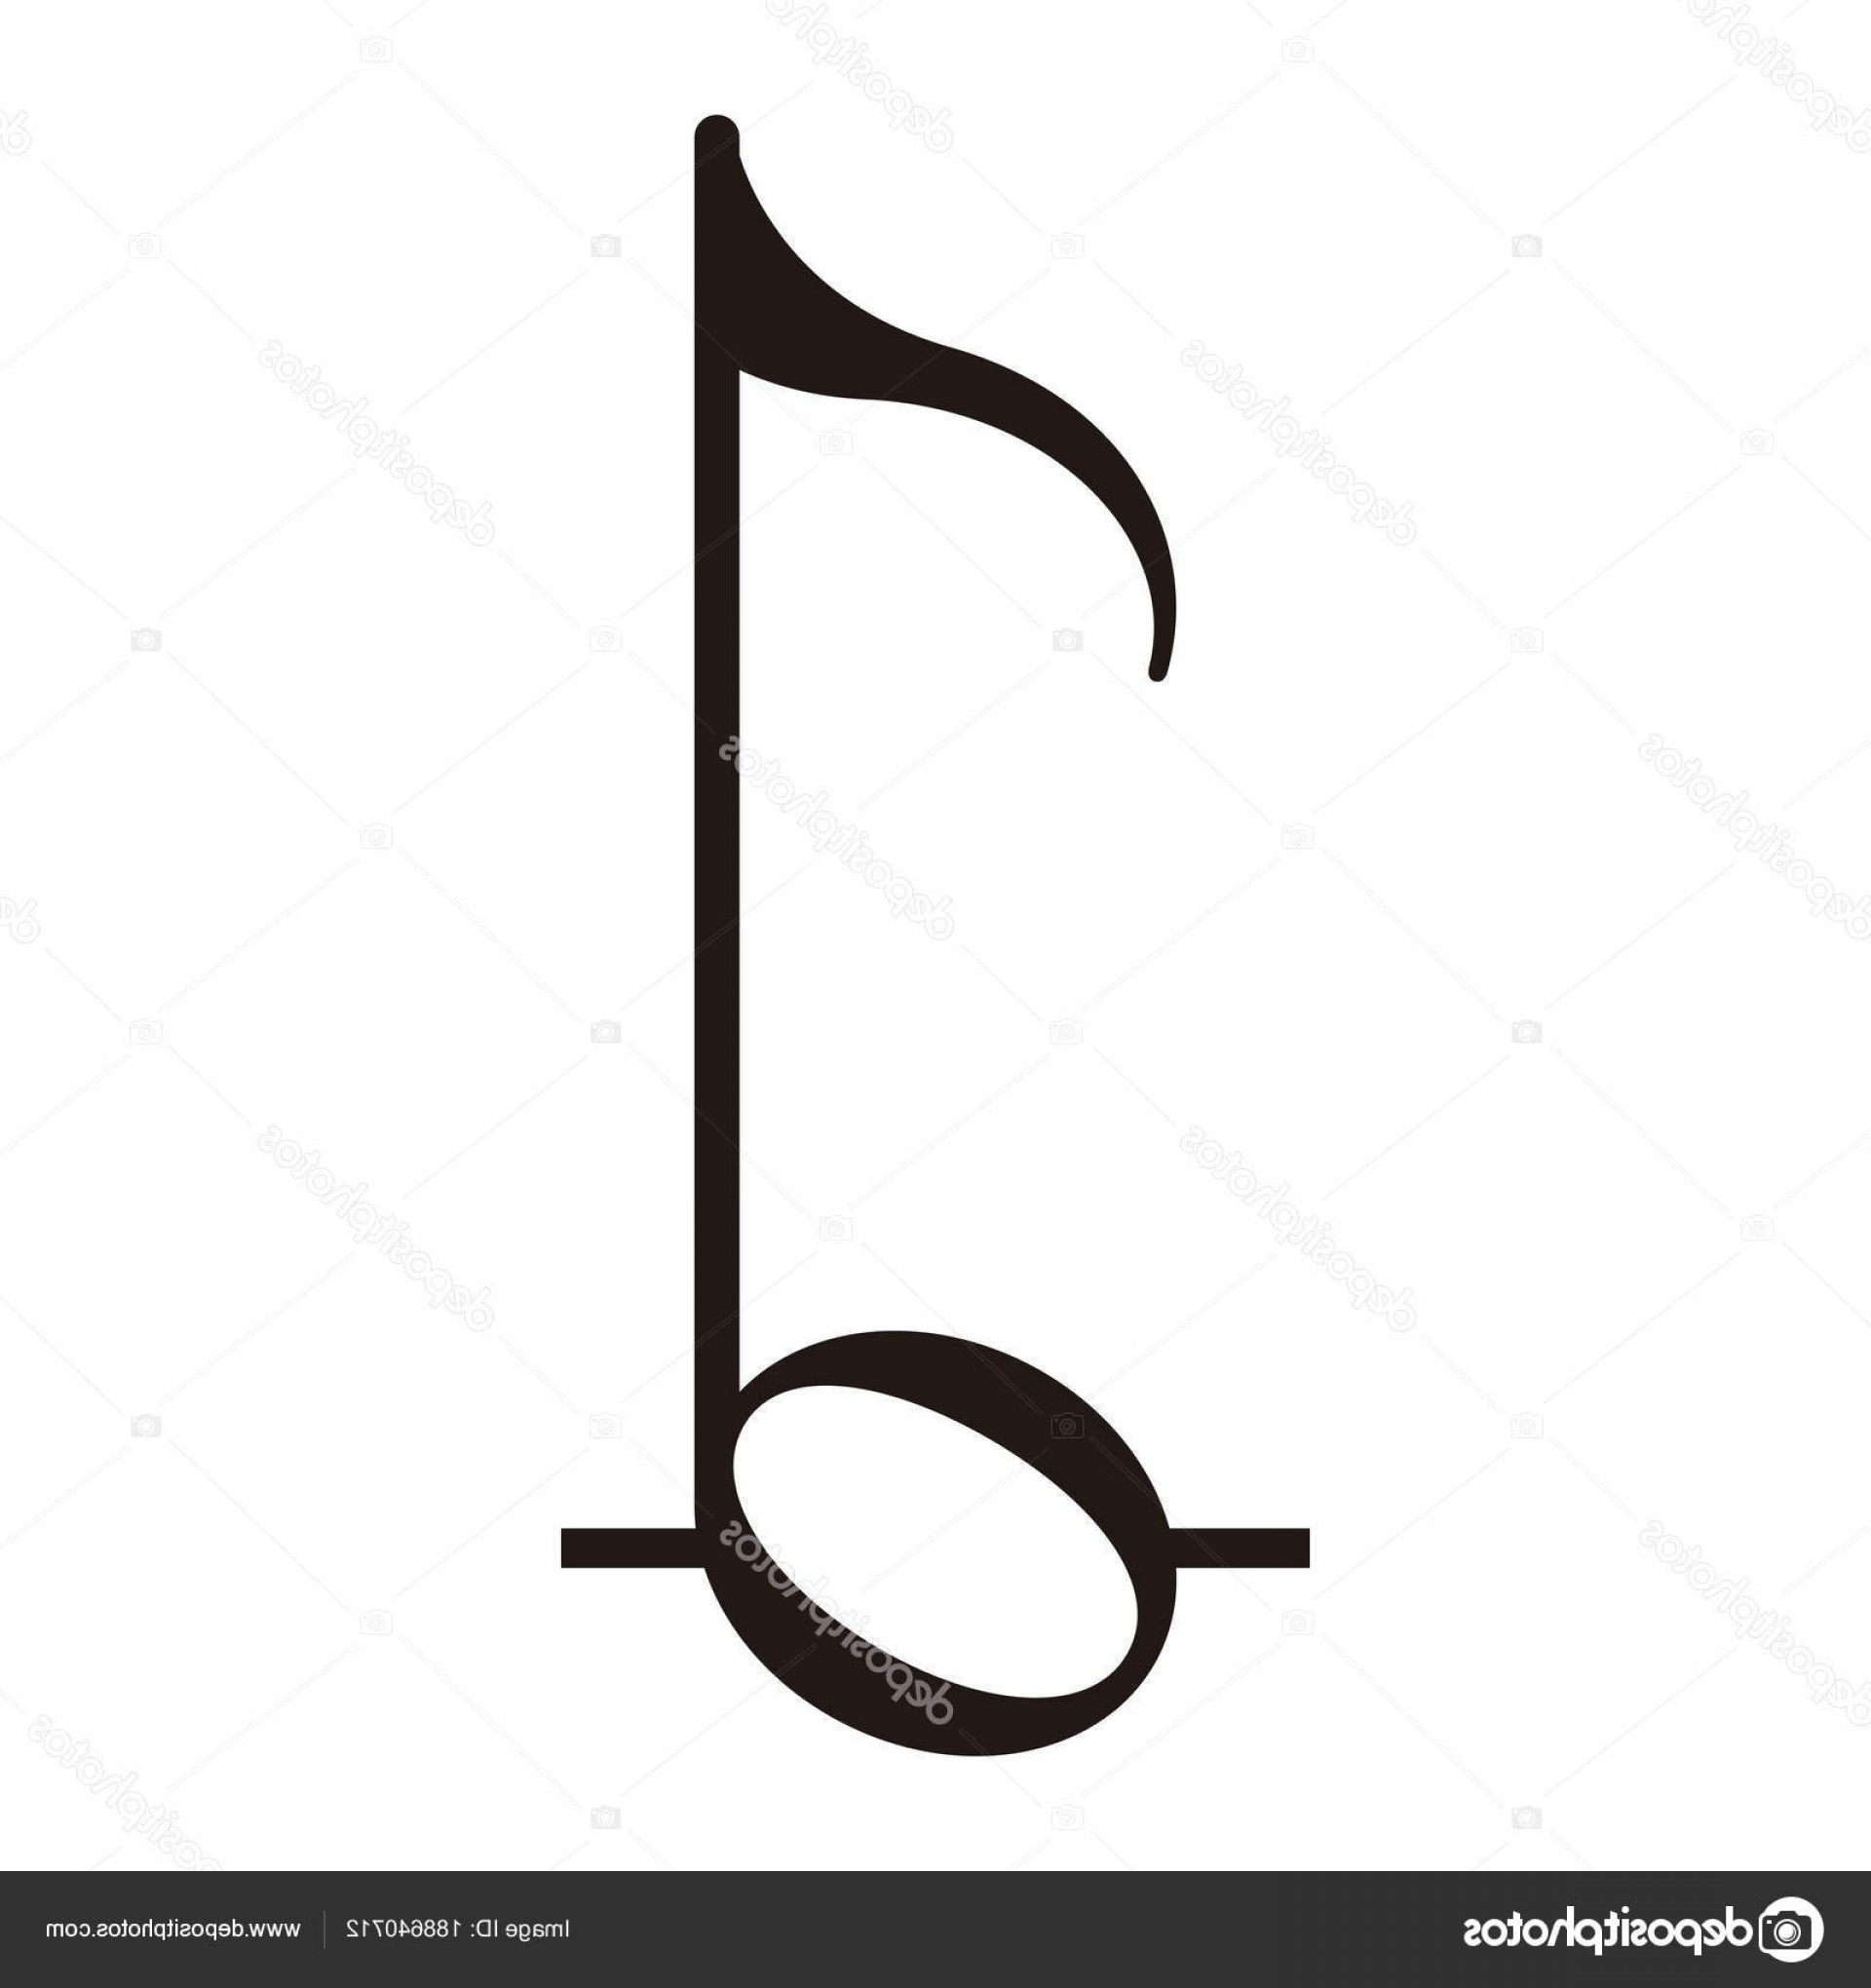 Eighth Note Vector: Stock Illustration Isolated Eighth Note Musical Note